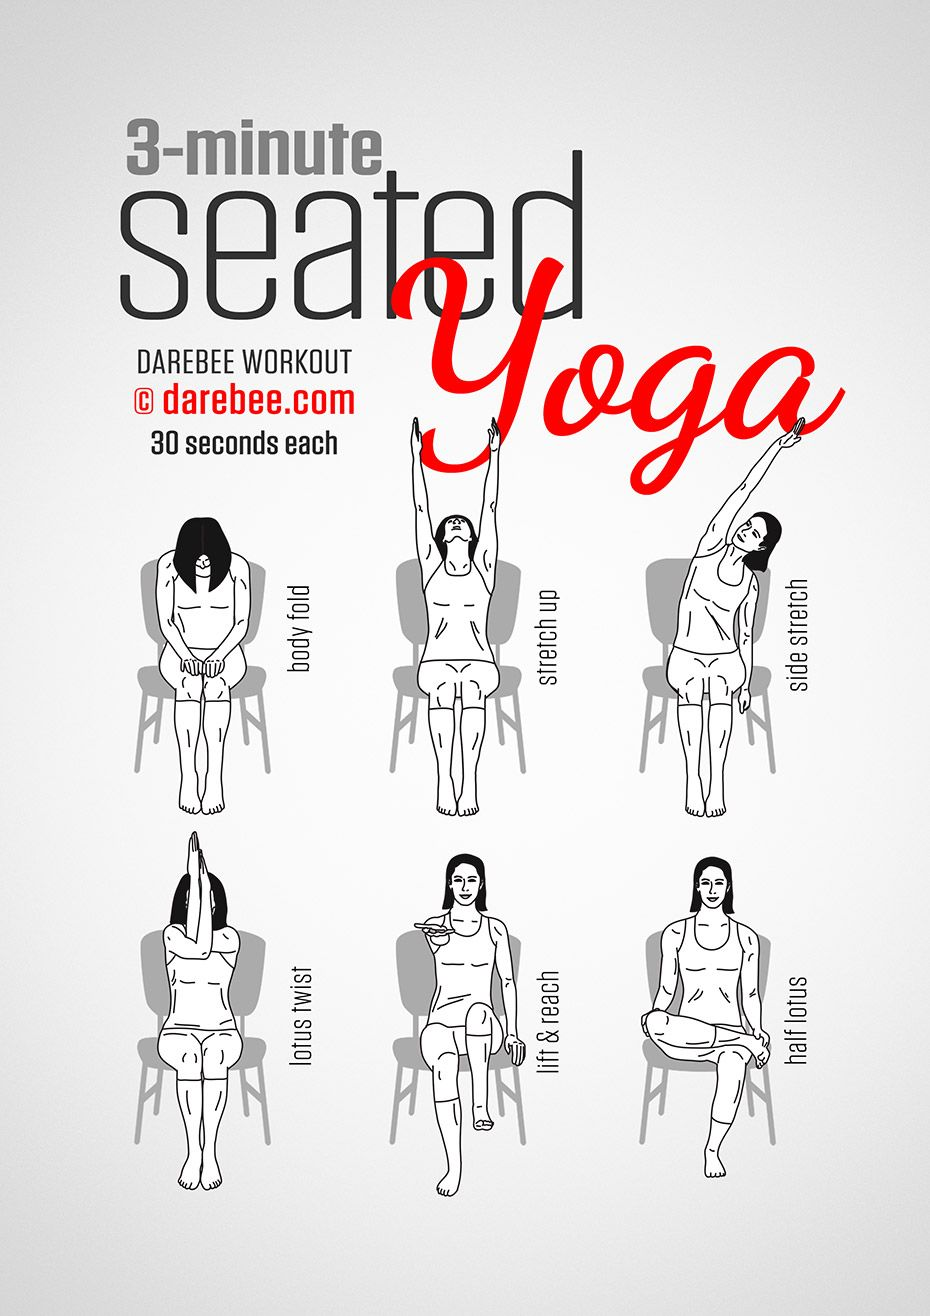 Seated Yoga Workout Full Body Difficulty 1/5 Office